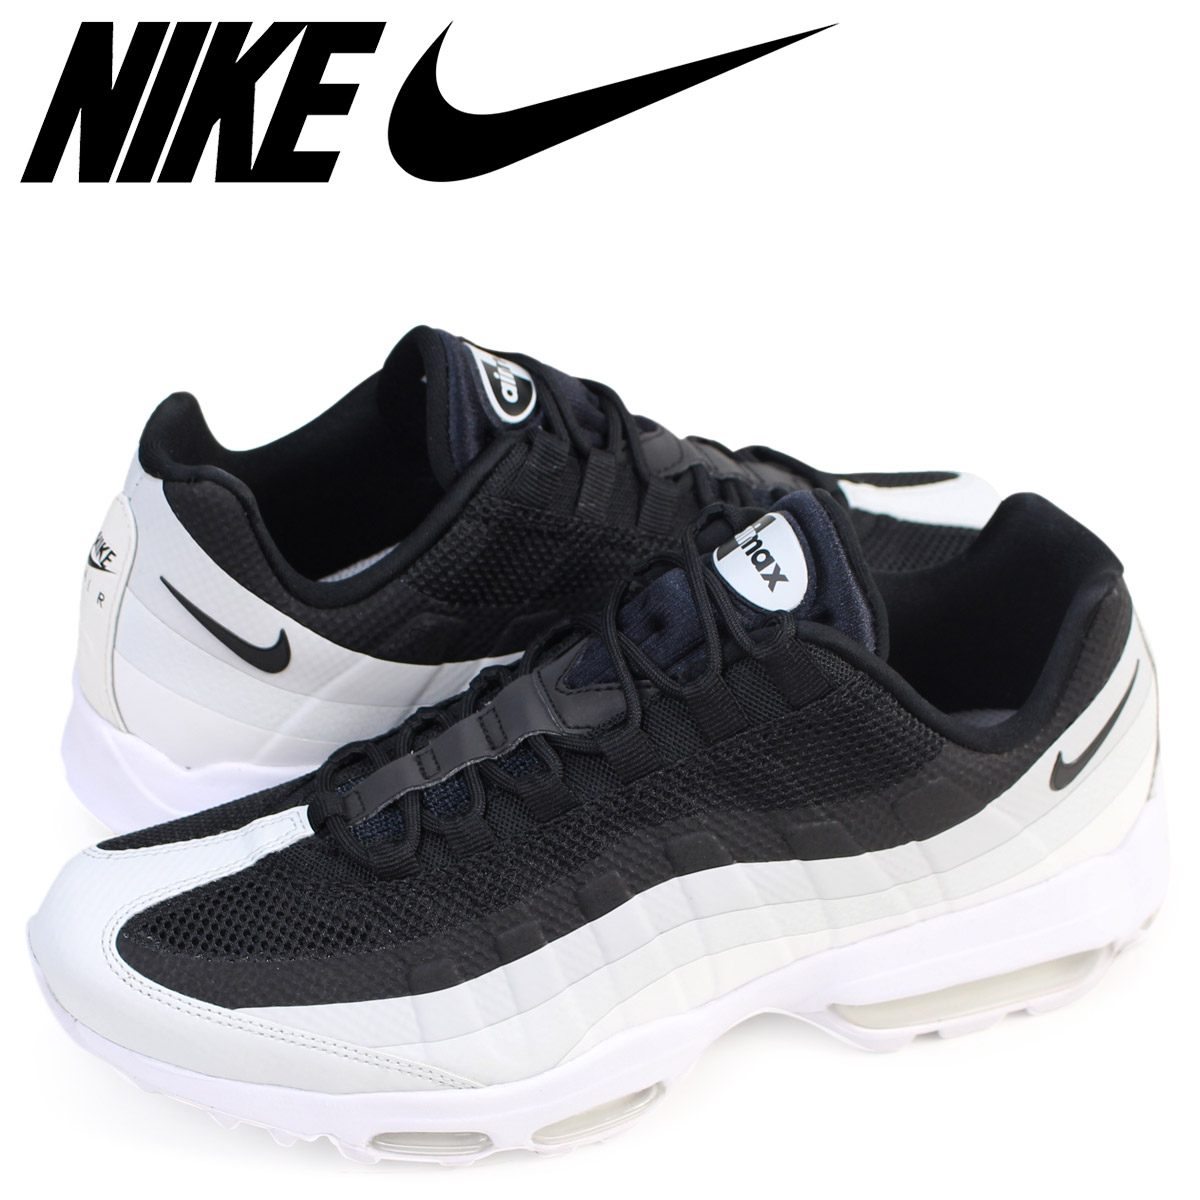 new style b105d 85a54 ... ALLSPORTS NIKE Kie Ney AMAX 95 sneakers AIR MAX 95 ULTRA ESSENTIAL men  ultra essential 857,910 ...